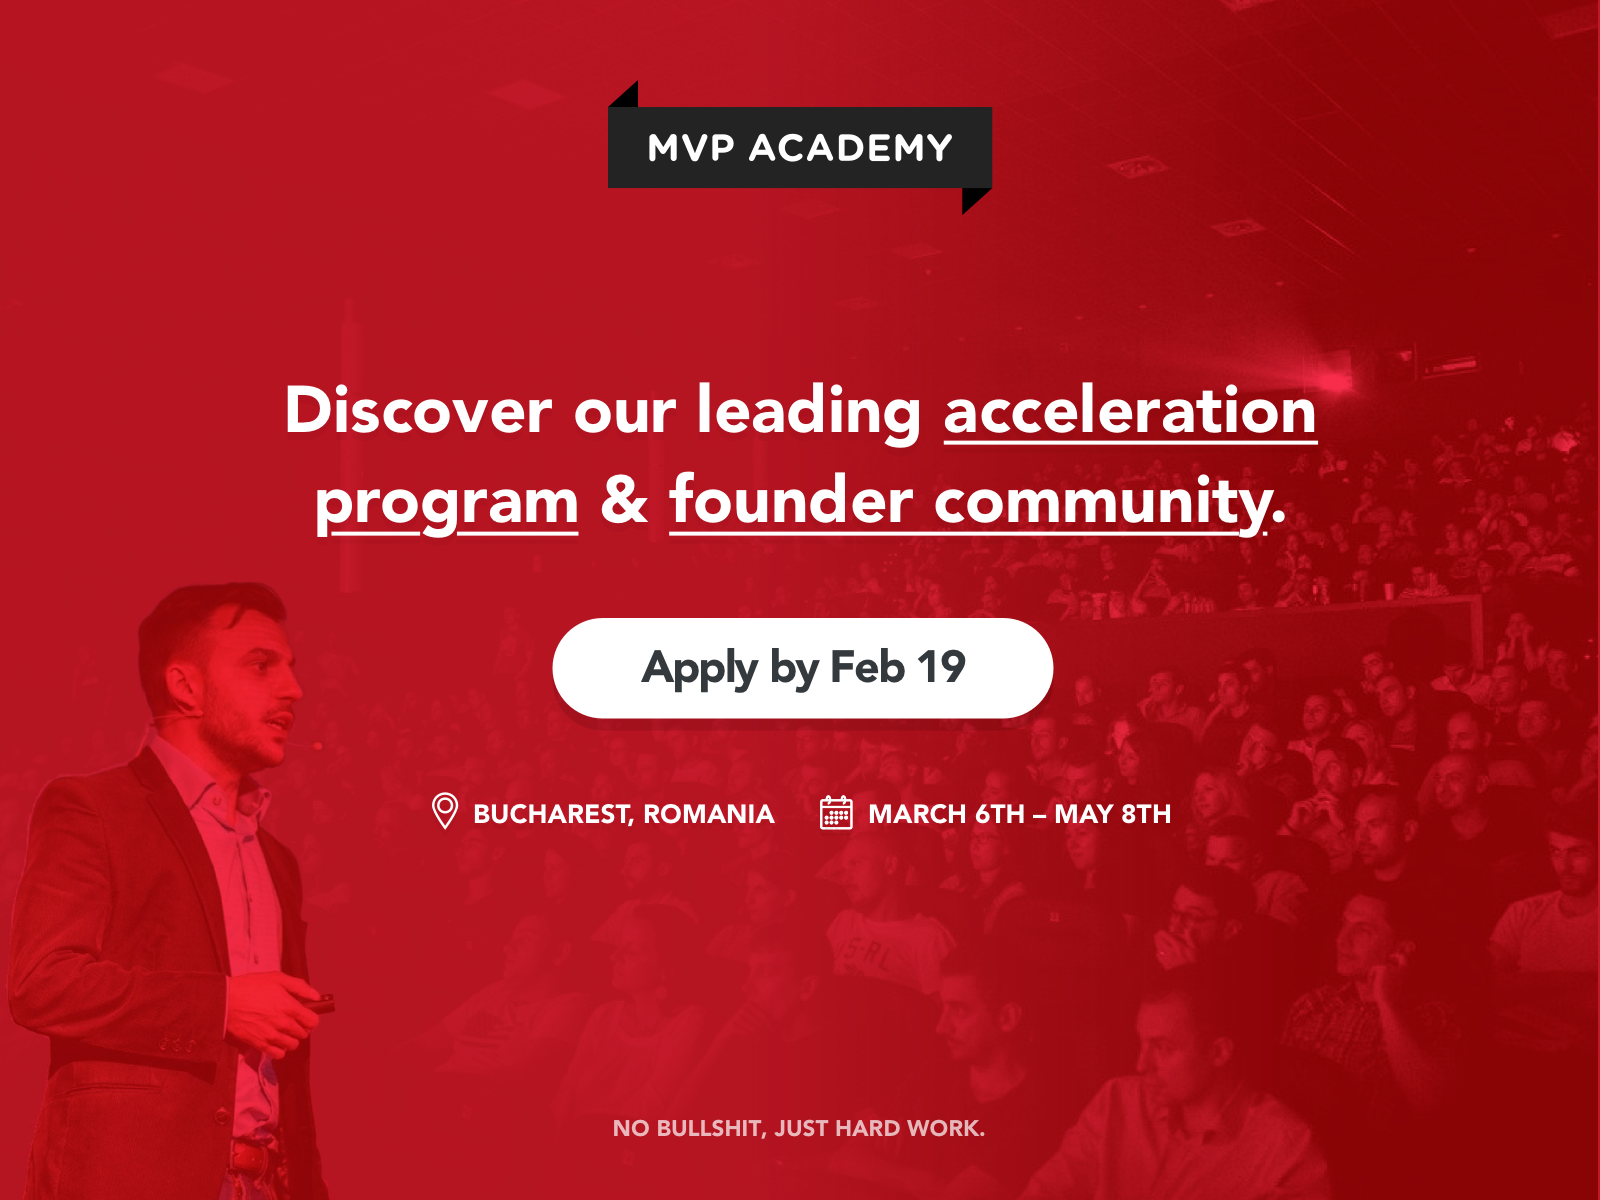 mvp academy accelerator how to web reflex urby scooterson